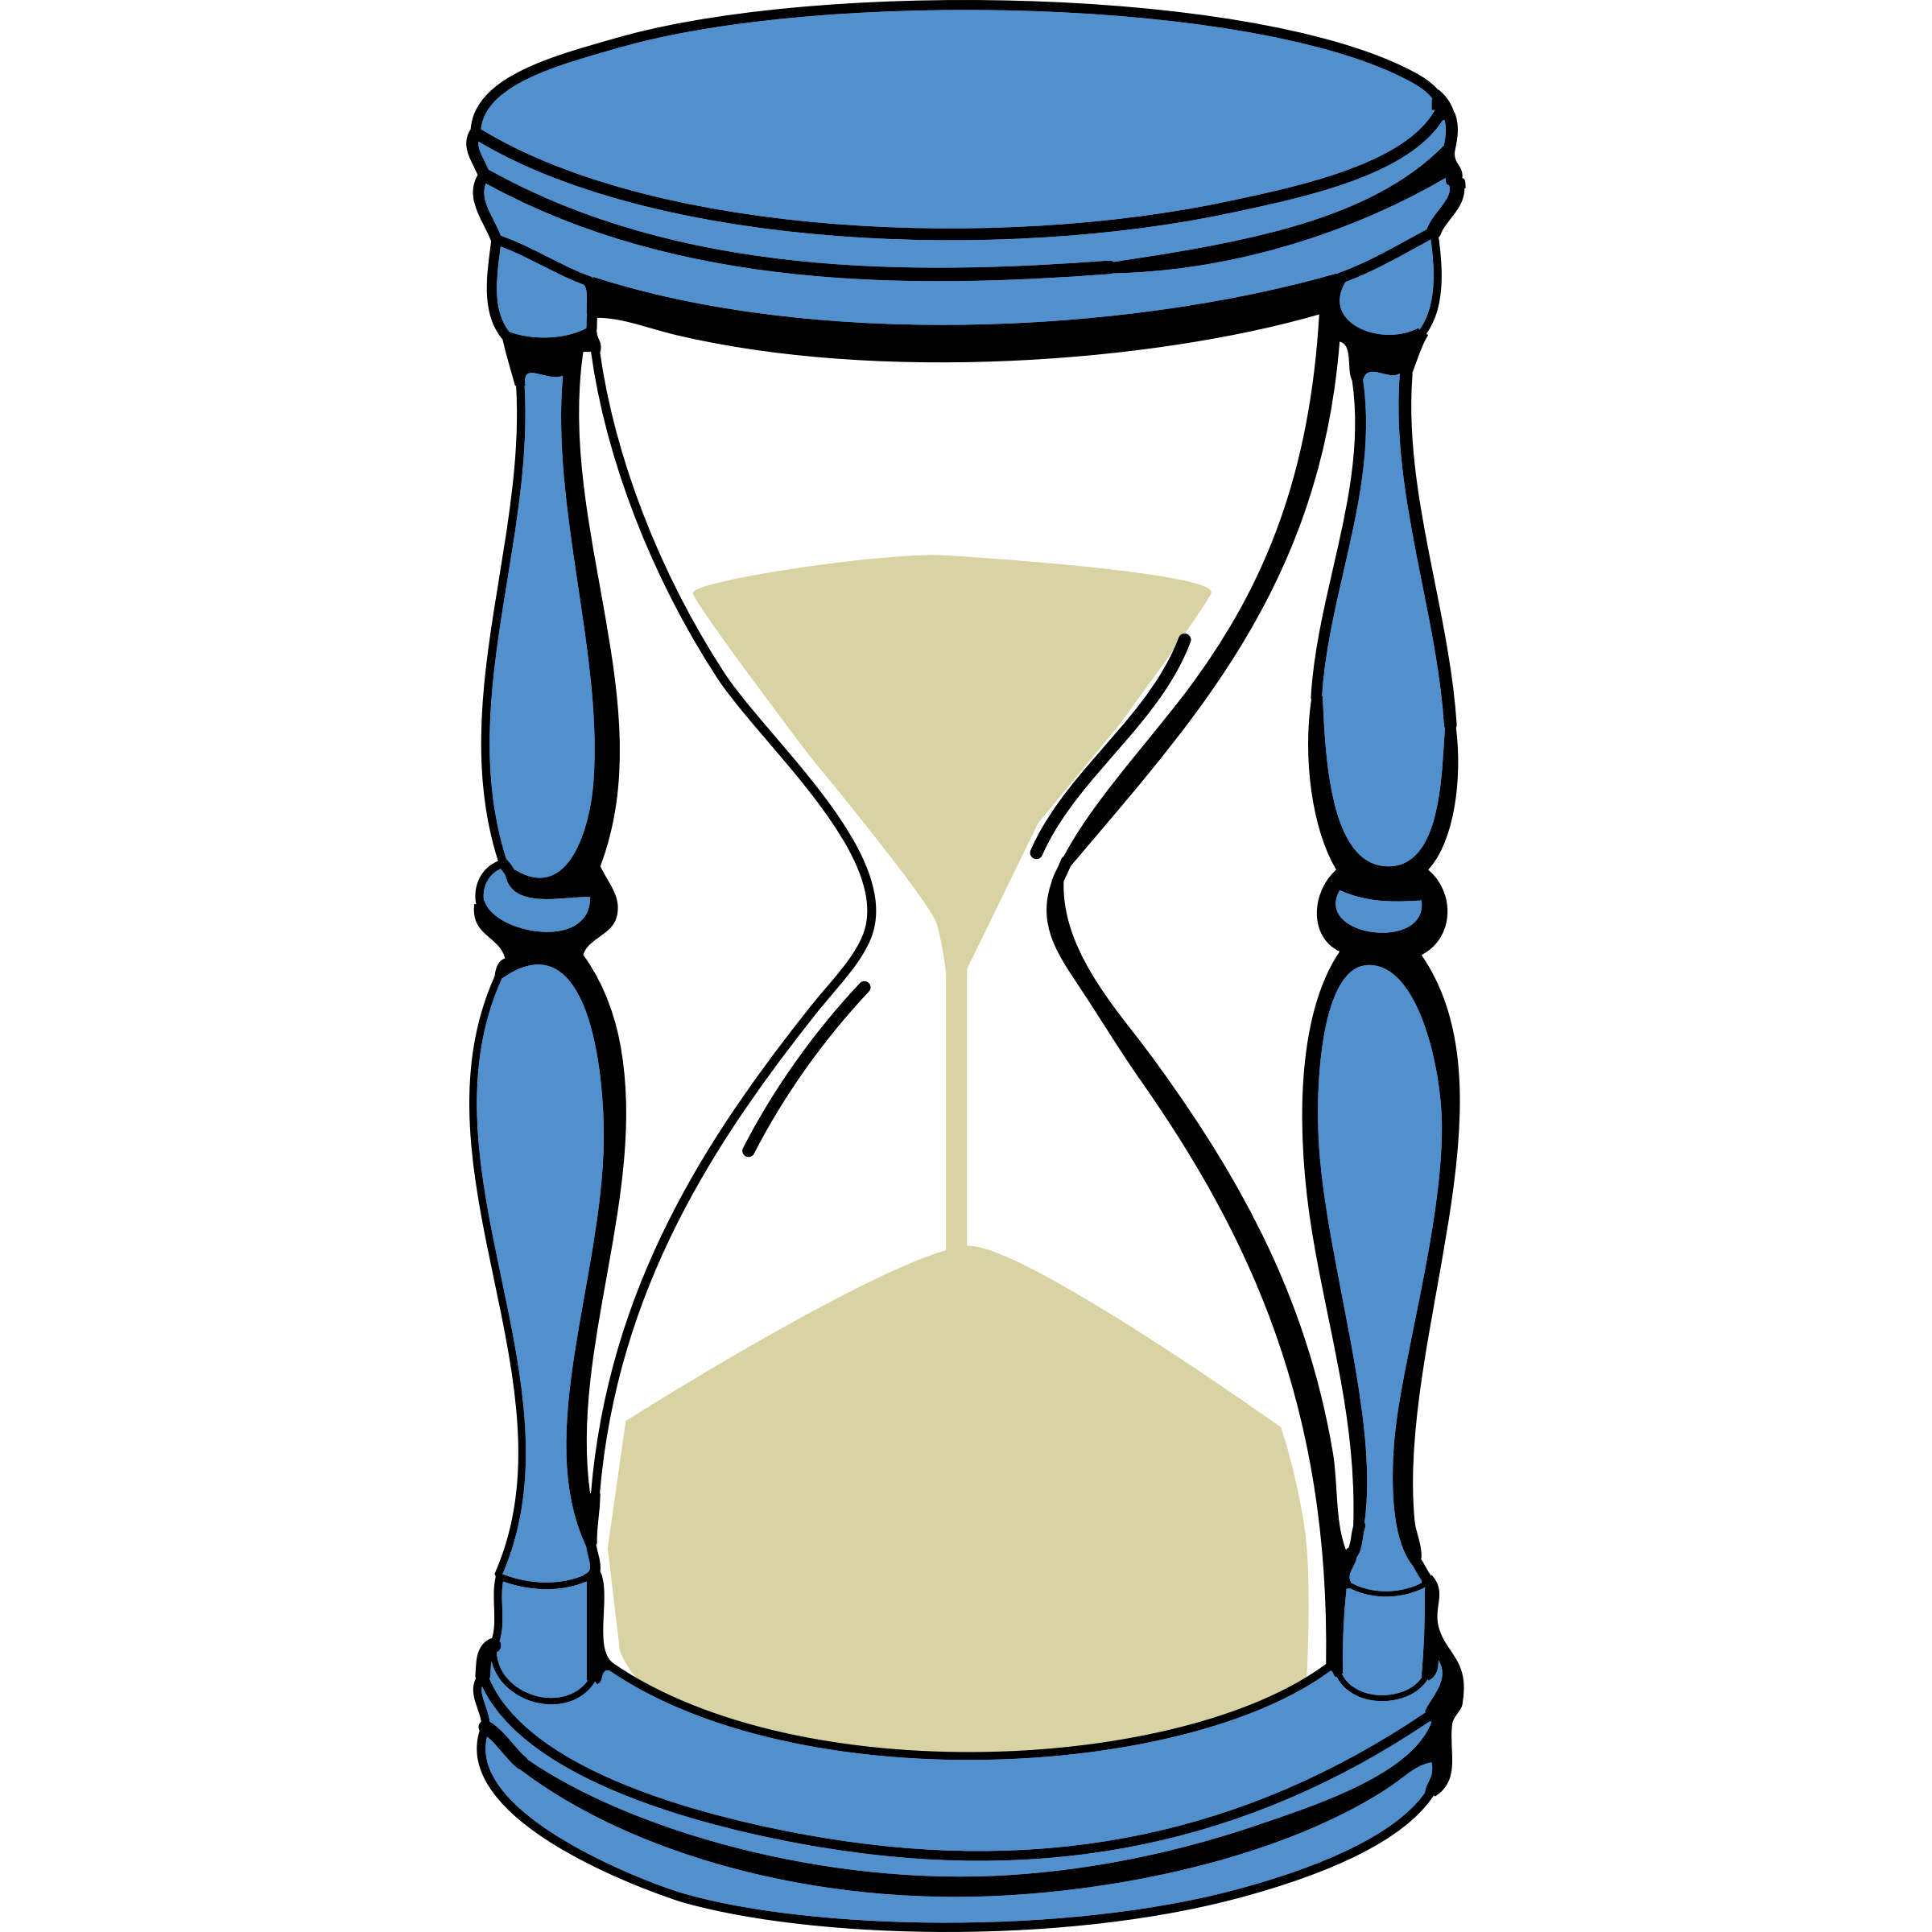 _hourglass_with_sand (2)